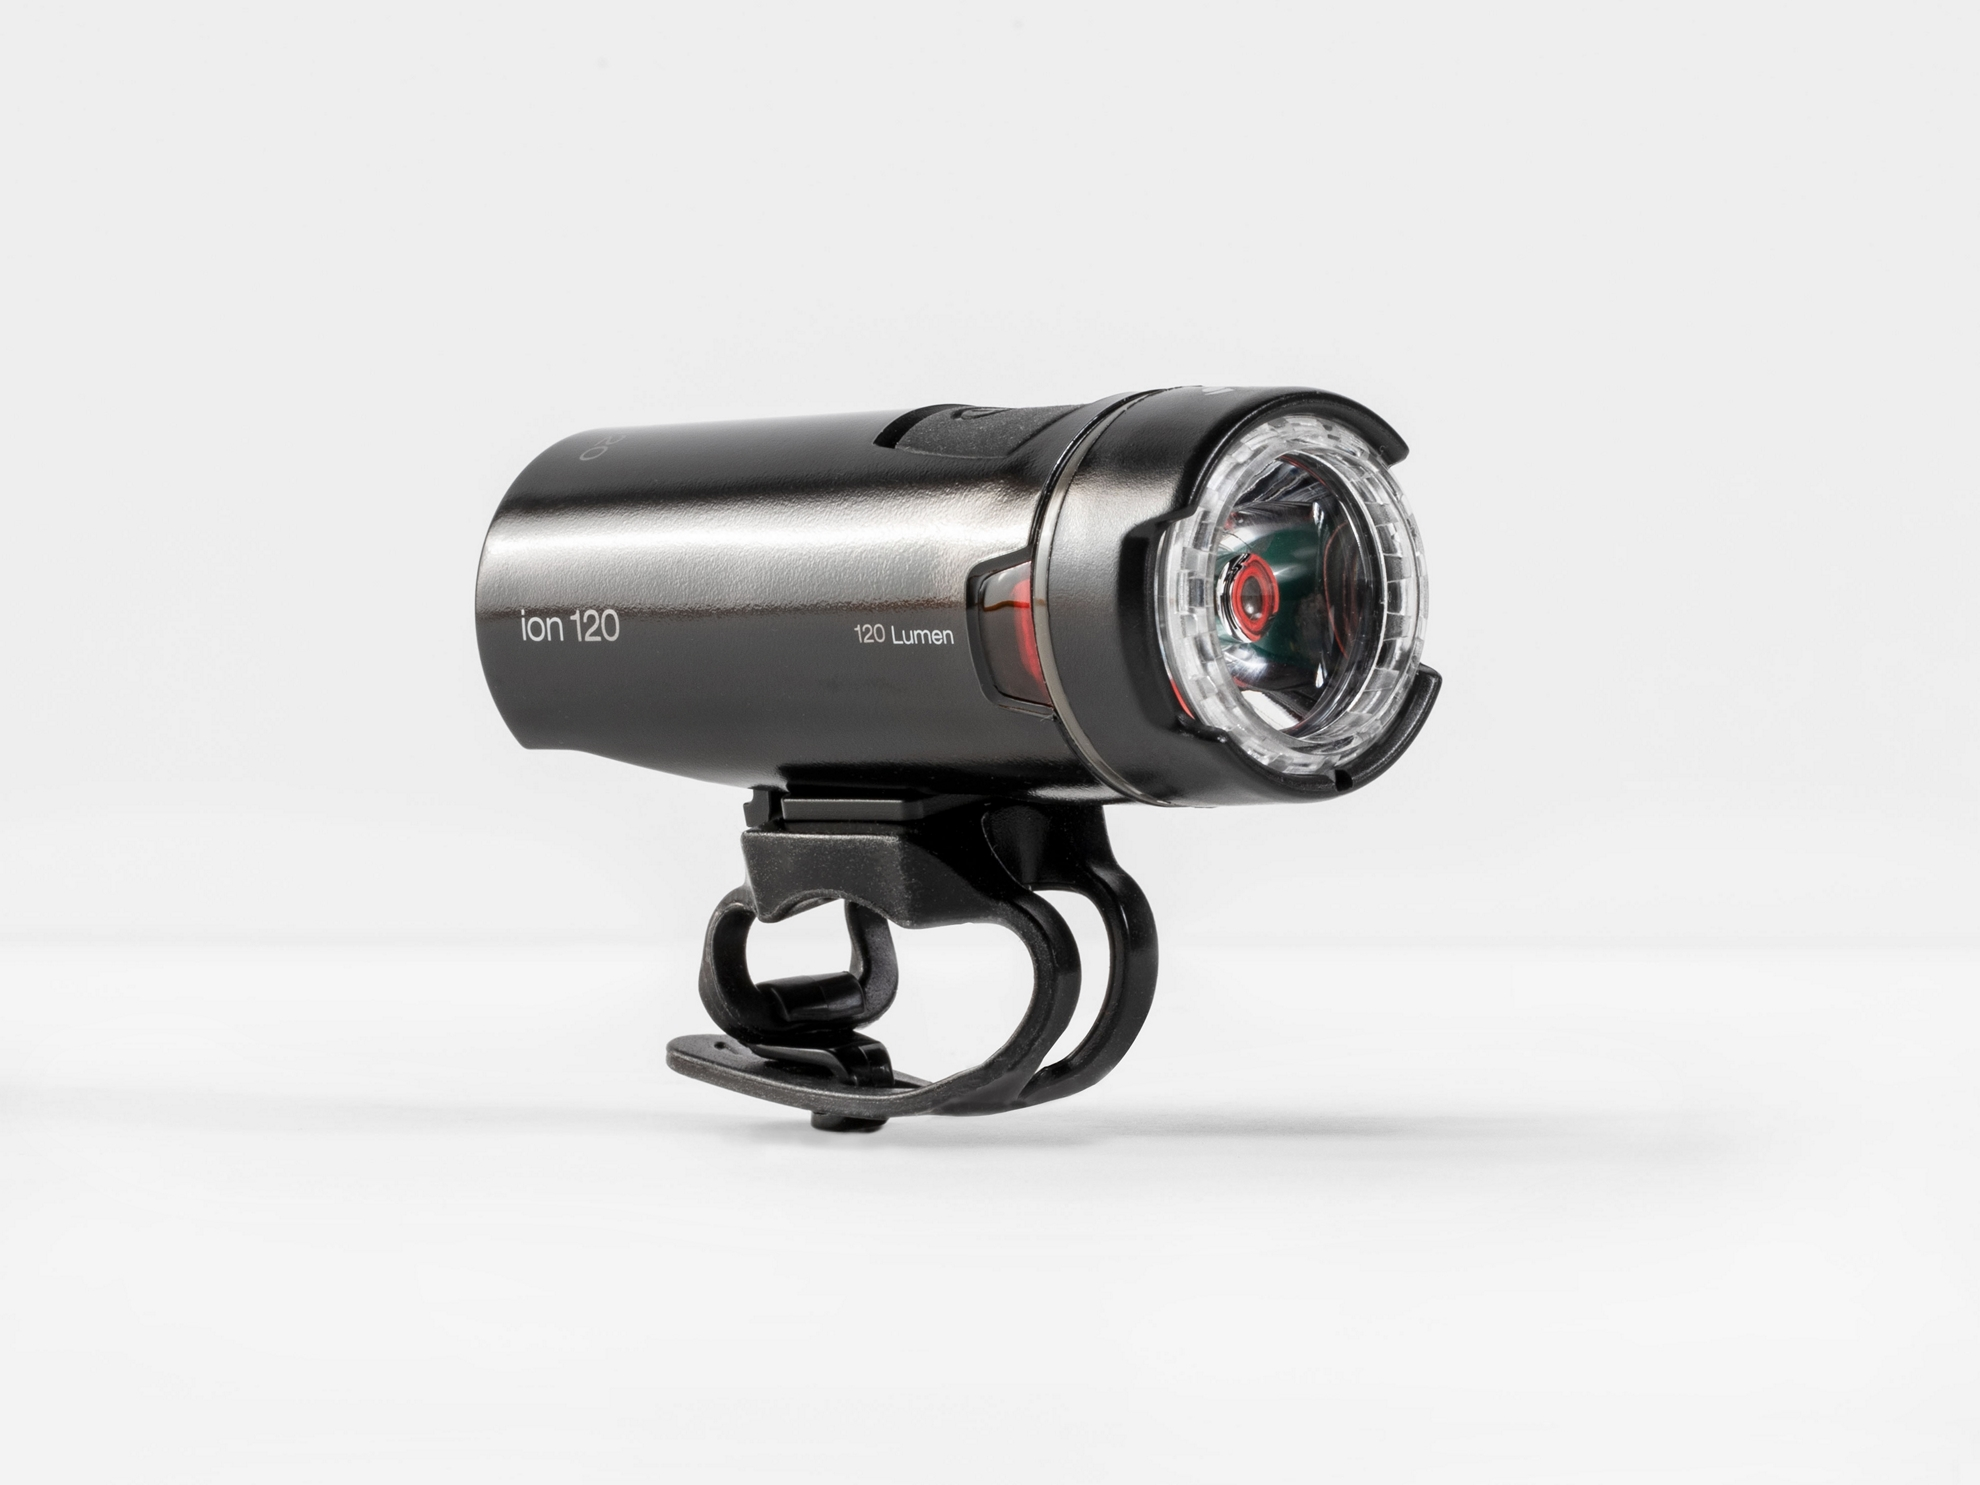 Bontrager Ion 120 Bike Lights Cycling Accessories